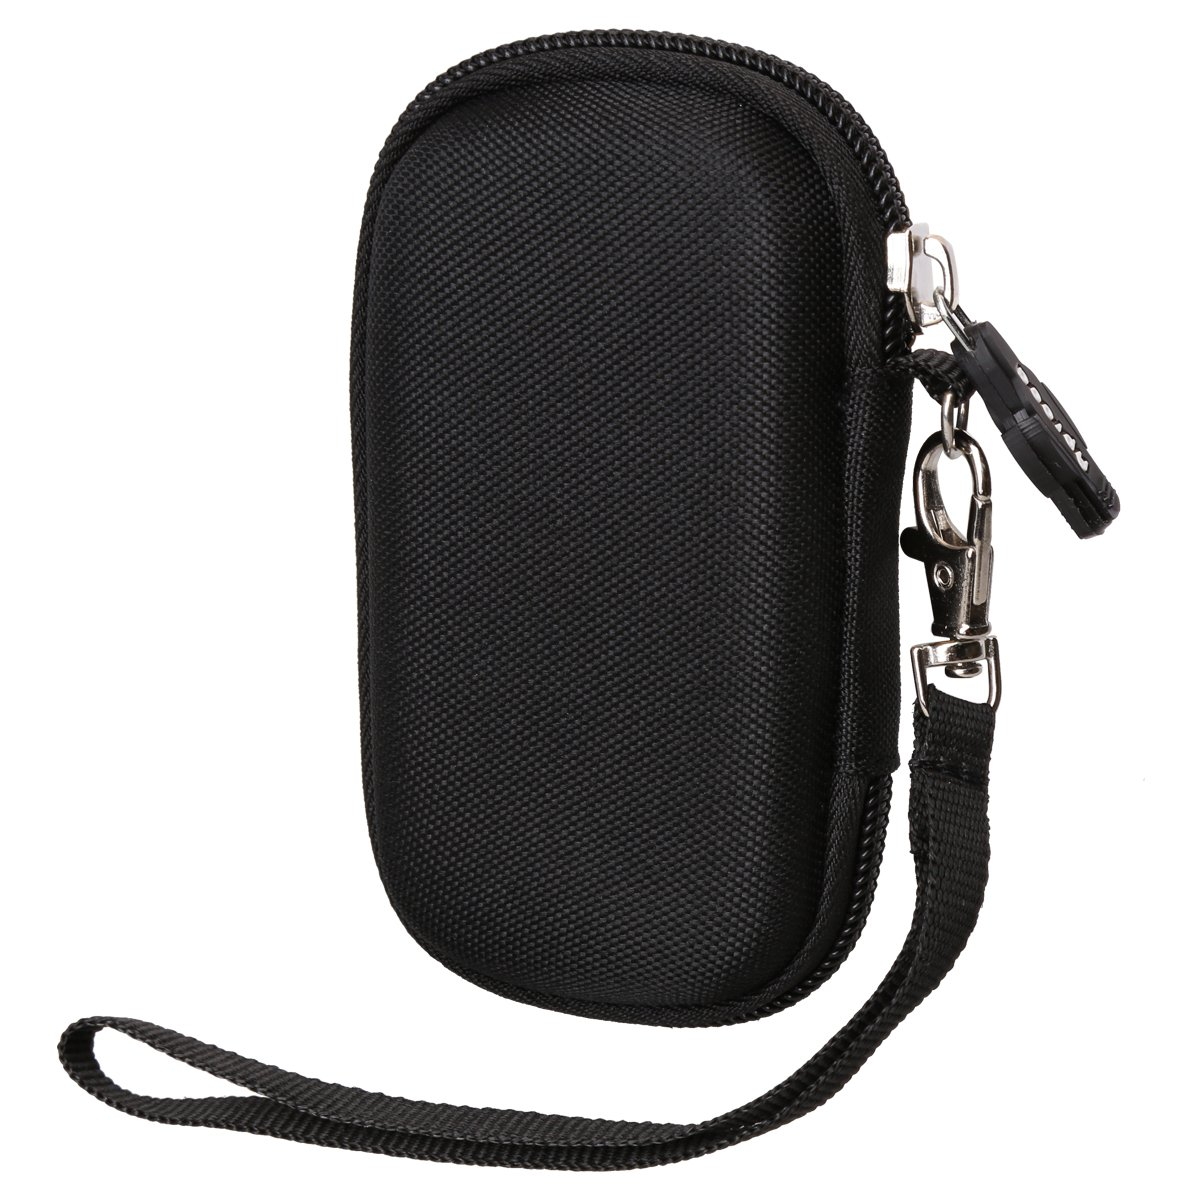 Aproca Hard Travel Carrying Case for CONTEC Handheld Portable ECG Monitor Heart Rate Beat LCD Bluetooth Electrocardiogram by Aproca (Image #5)